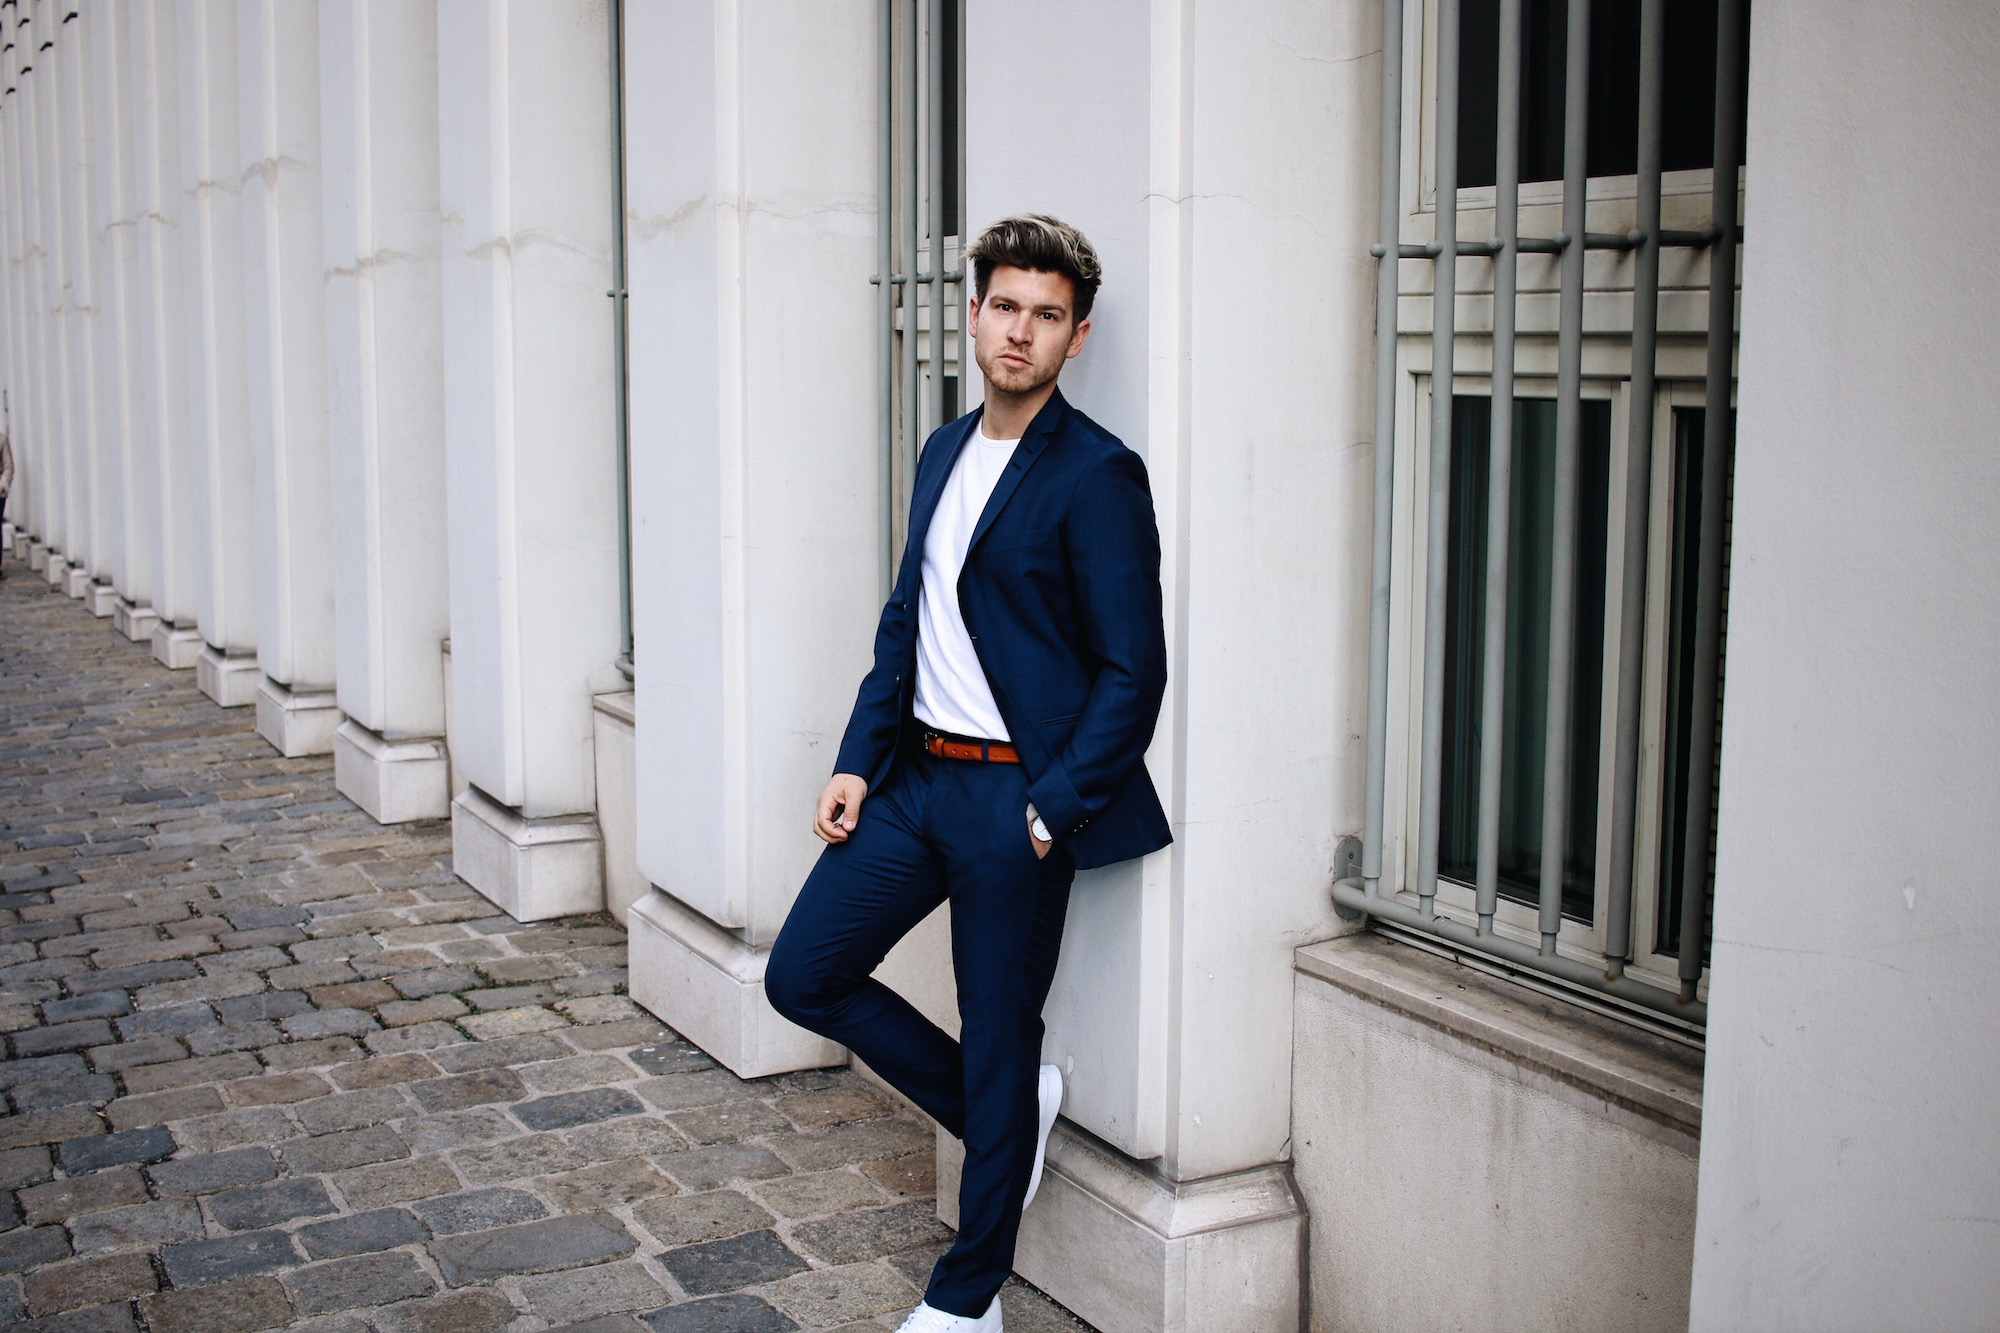 Tiger-Of-Sweden-Suit-Mix-Match_Three-ways-to-wear-a-suit_Meanwhile-in-Awesometown_Austrian-Mens-Fashion-and-Lifestyle-Blogger8